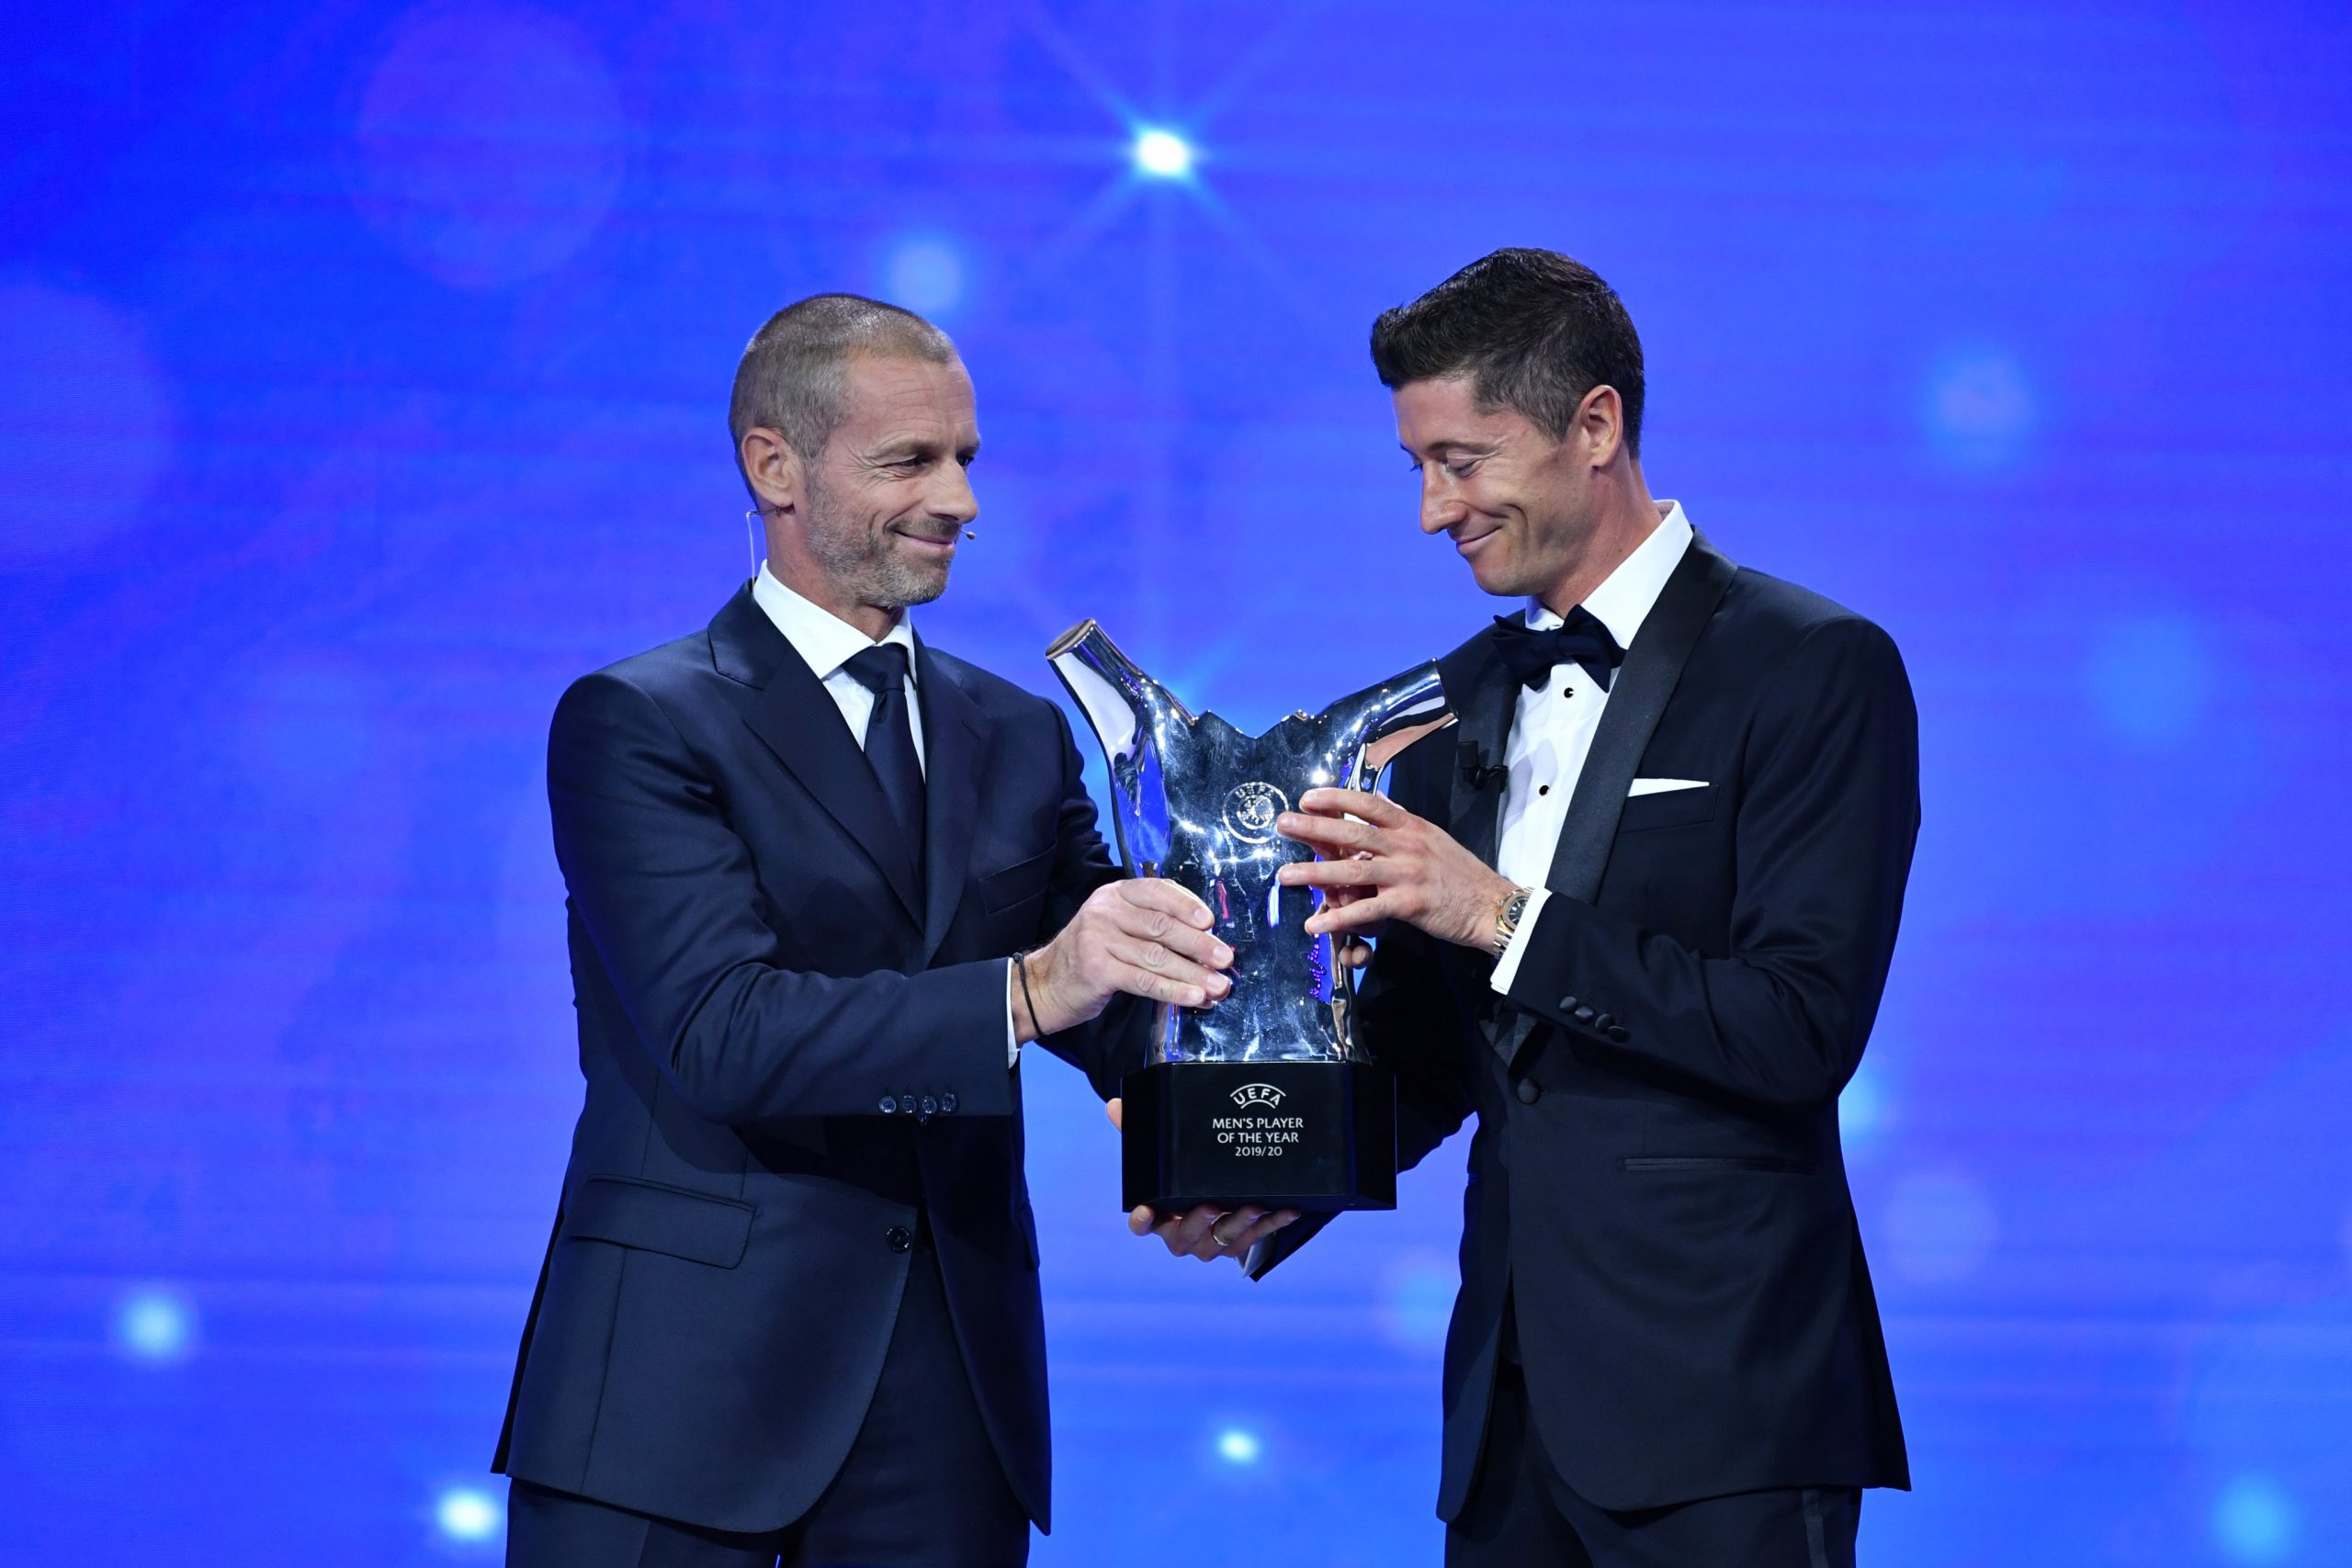 Bayern Munich Star Lewandowski Voted UEFA Men's Player Of The Year